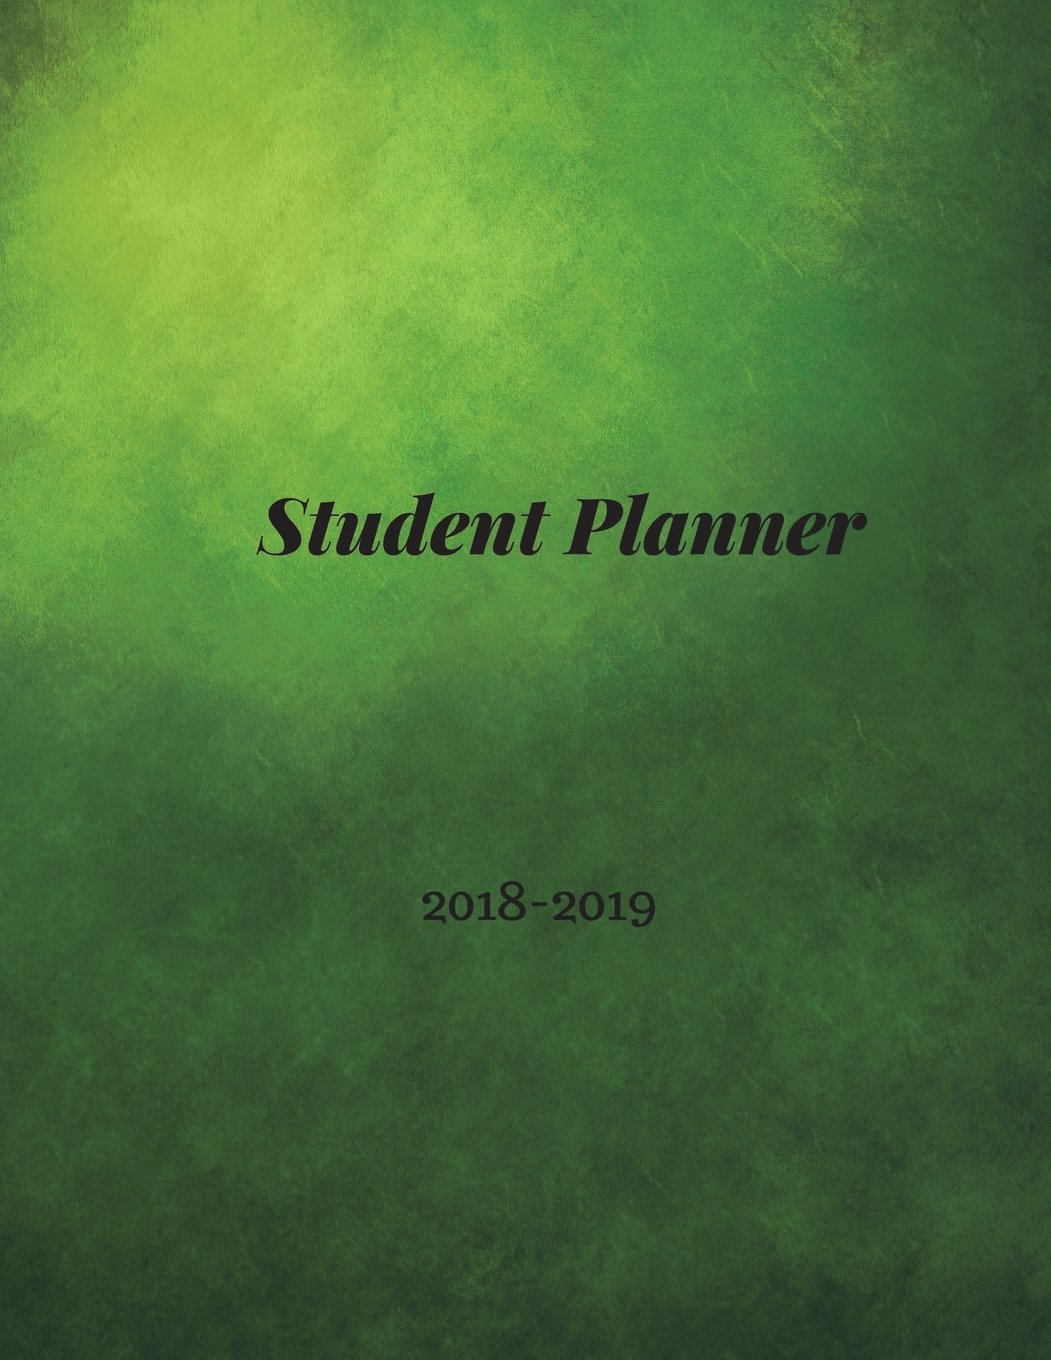 Student Planner 2018-2019: Student Planner Book, High School Student Planners, Undated Student Planner, College Weekly Planner, Elementary Student Planners, 2018-2019 Academic Planner, Grunge Theme PDF